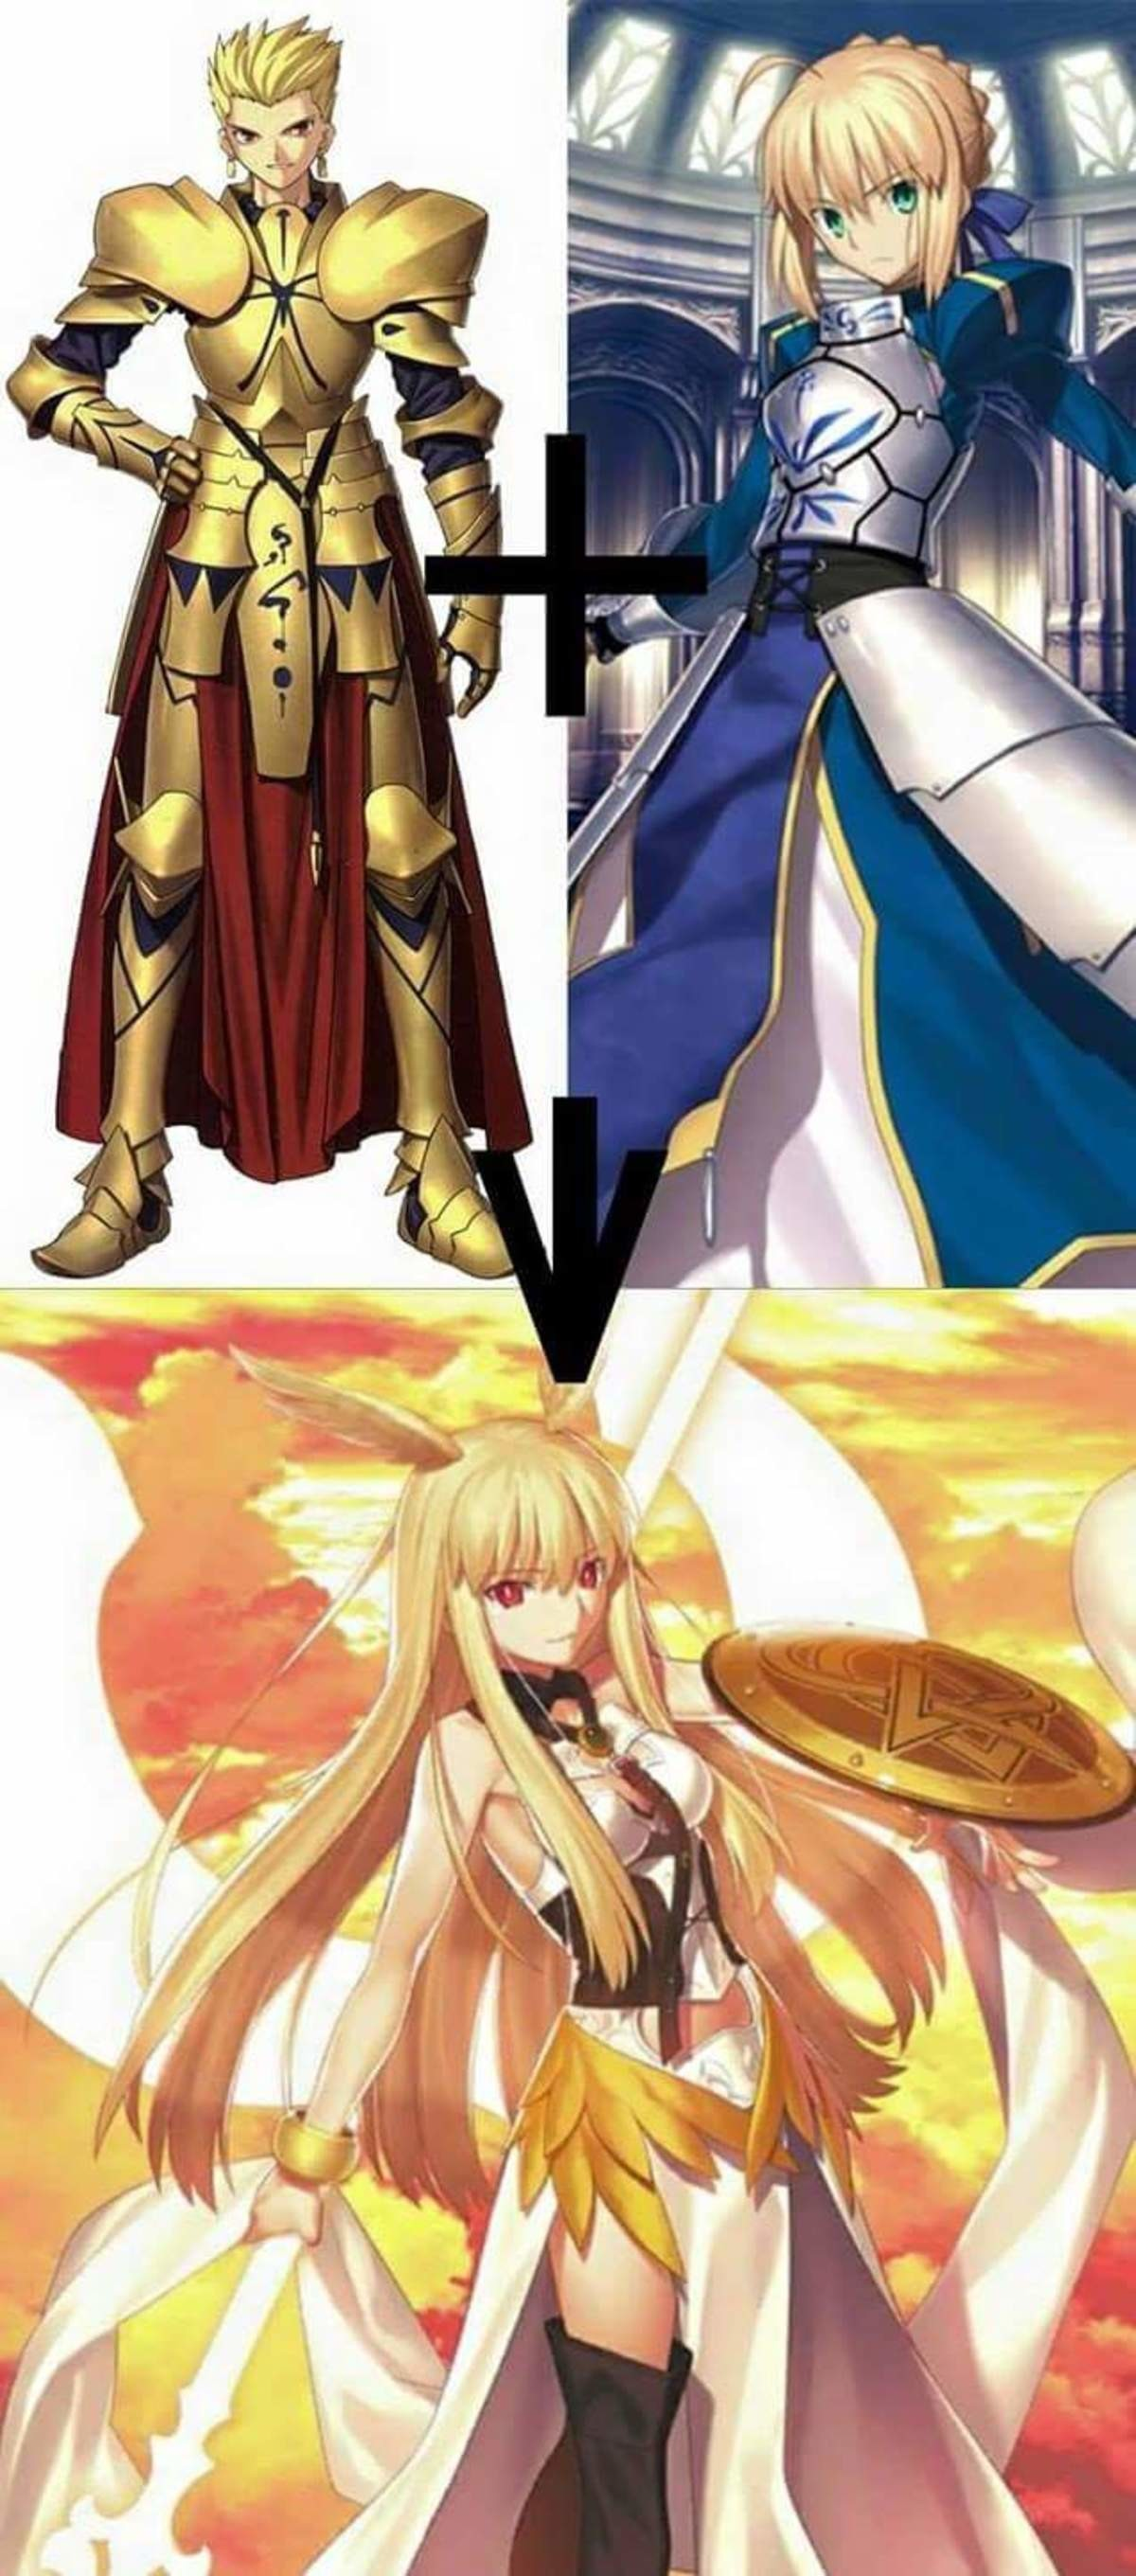 Could Gill Actually Got Saber?. join list: SmolHol (1445 subs)Mention History.. I just started watching season 2 of UBW recently Why does Gilgamesh still have his powers? I thought he became a regular human after the events of Fate Zero?